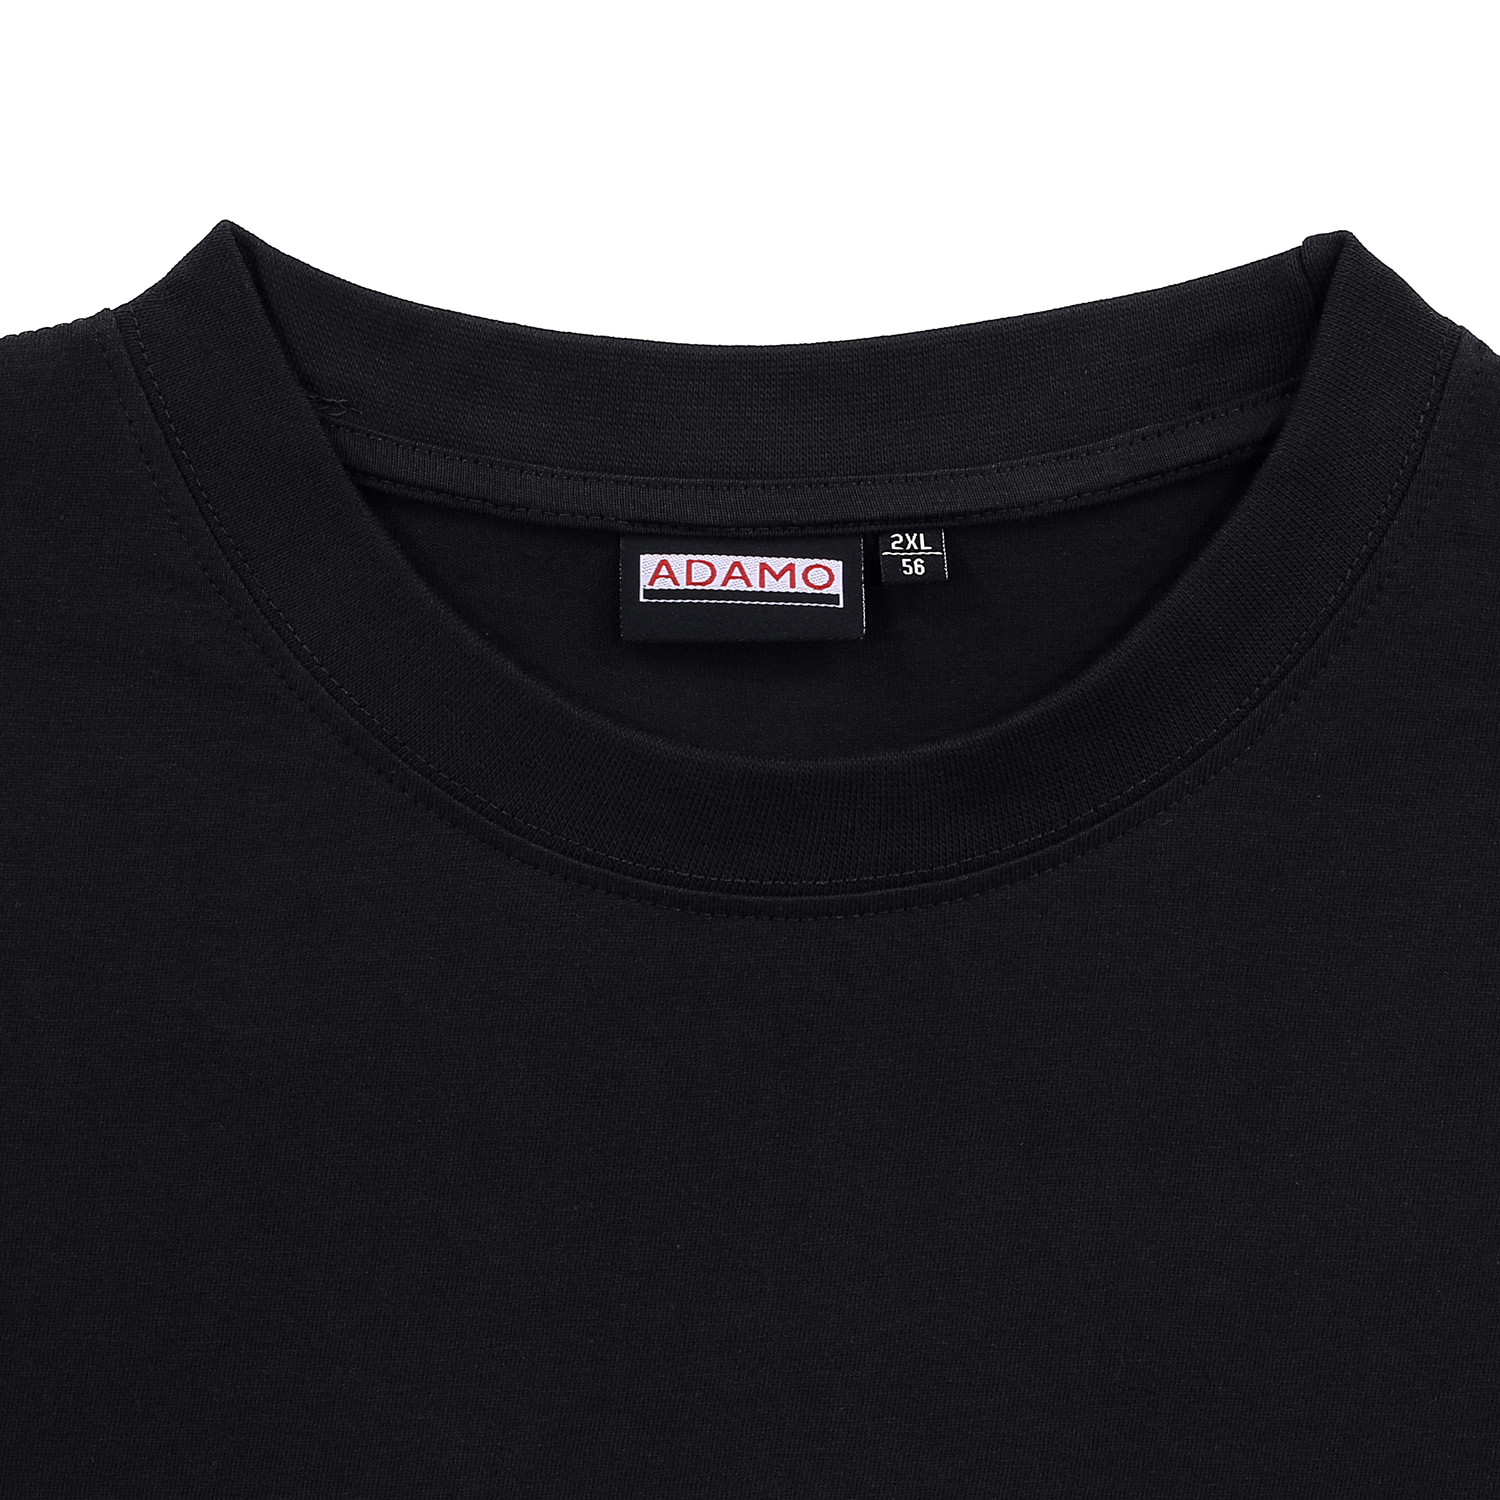 Detail Image to Black double pack MARLON t-shirt by ADAMO up to kingsize 12XL